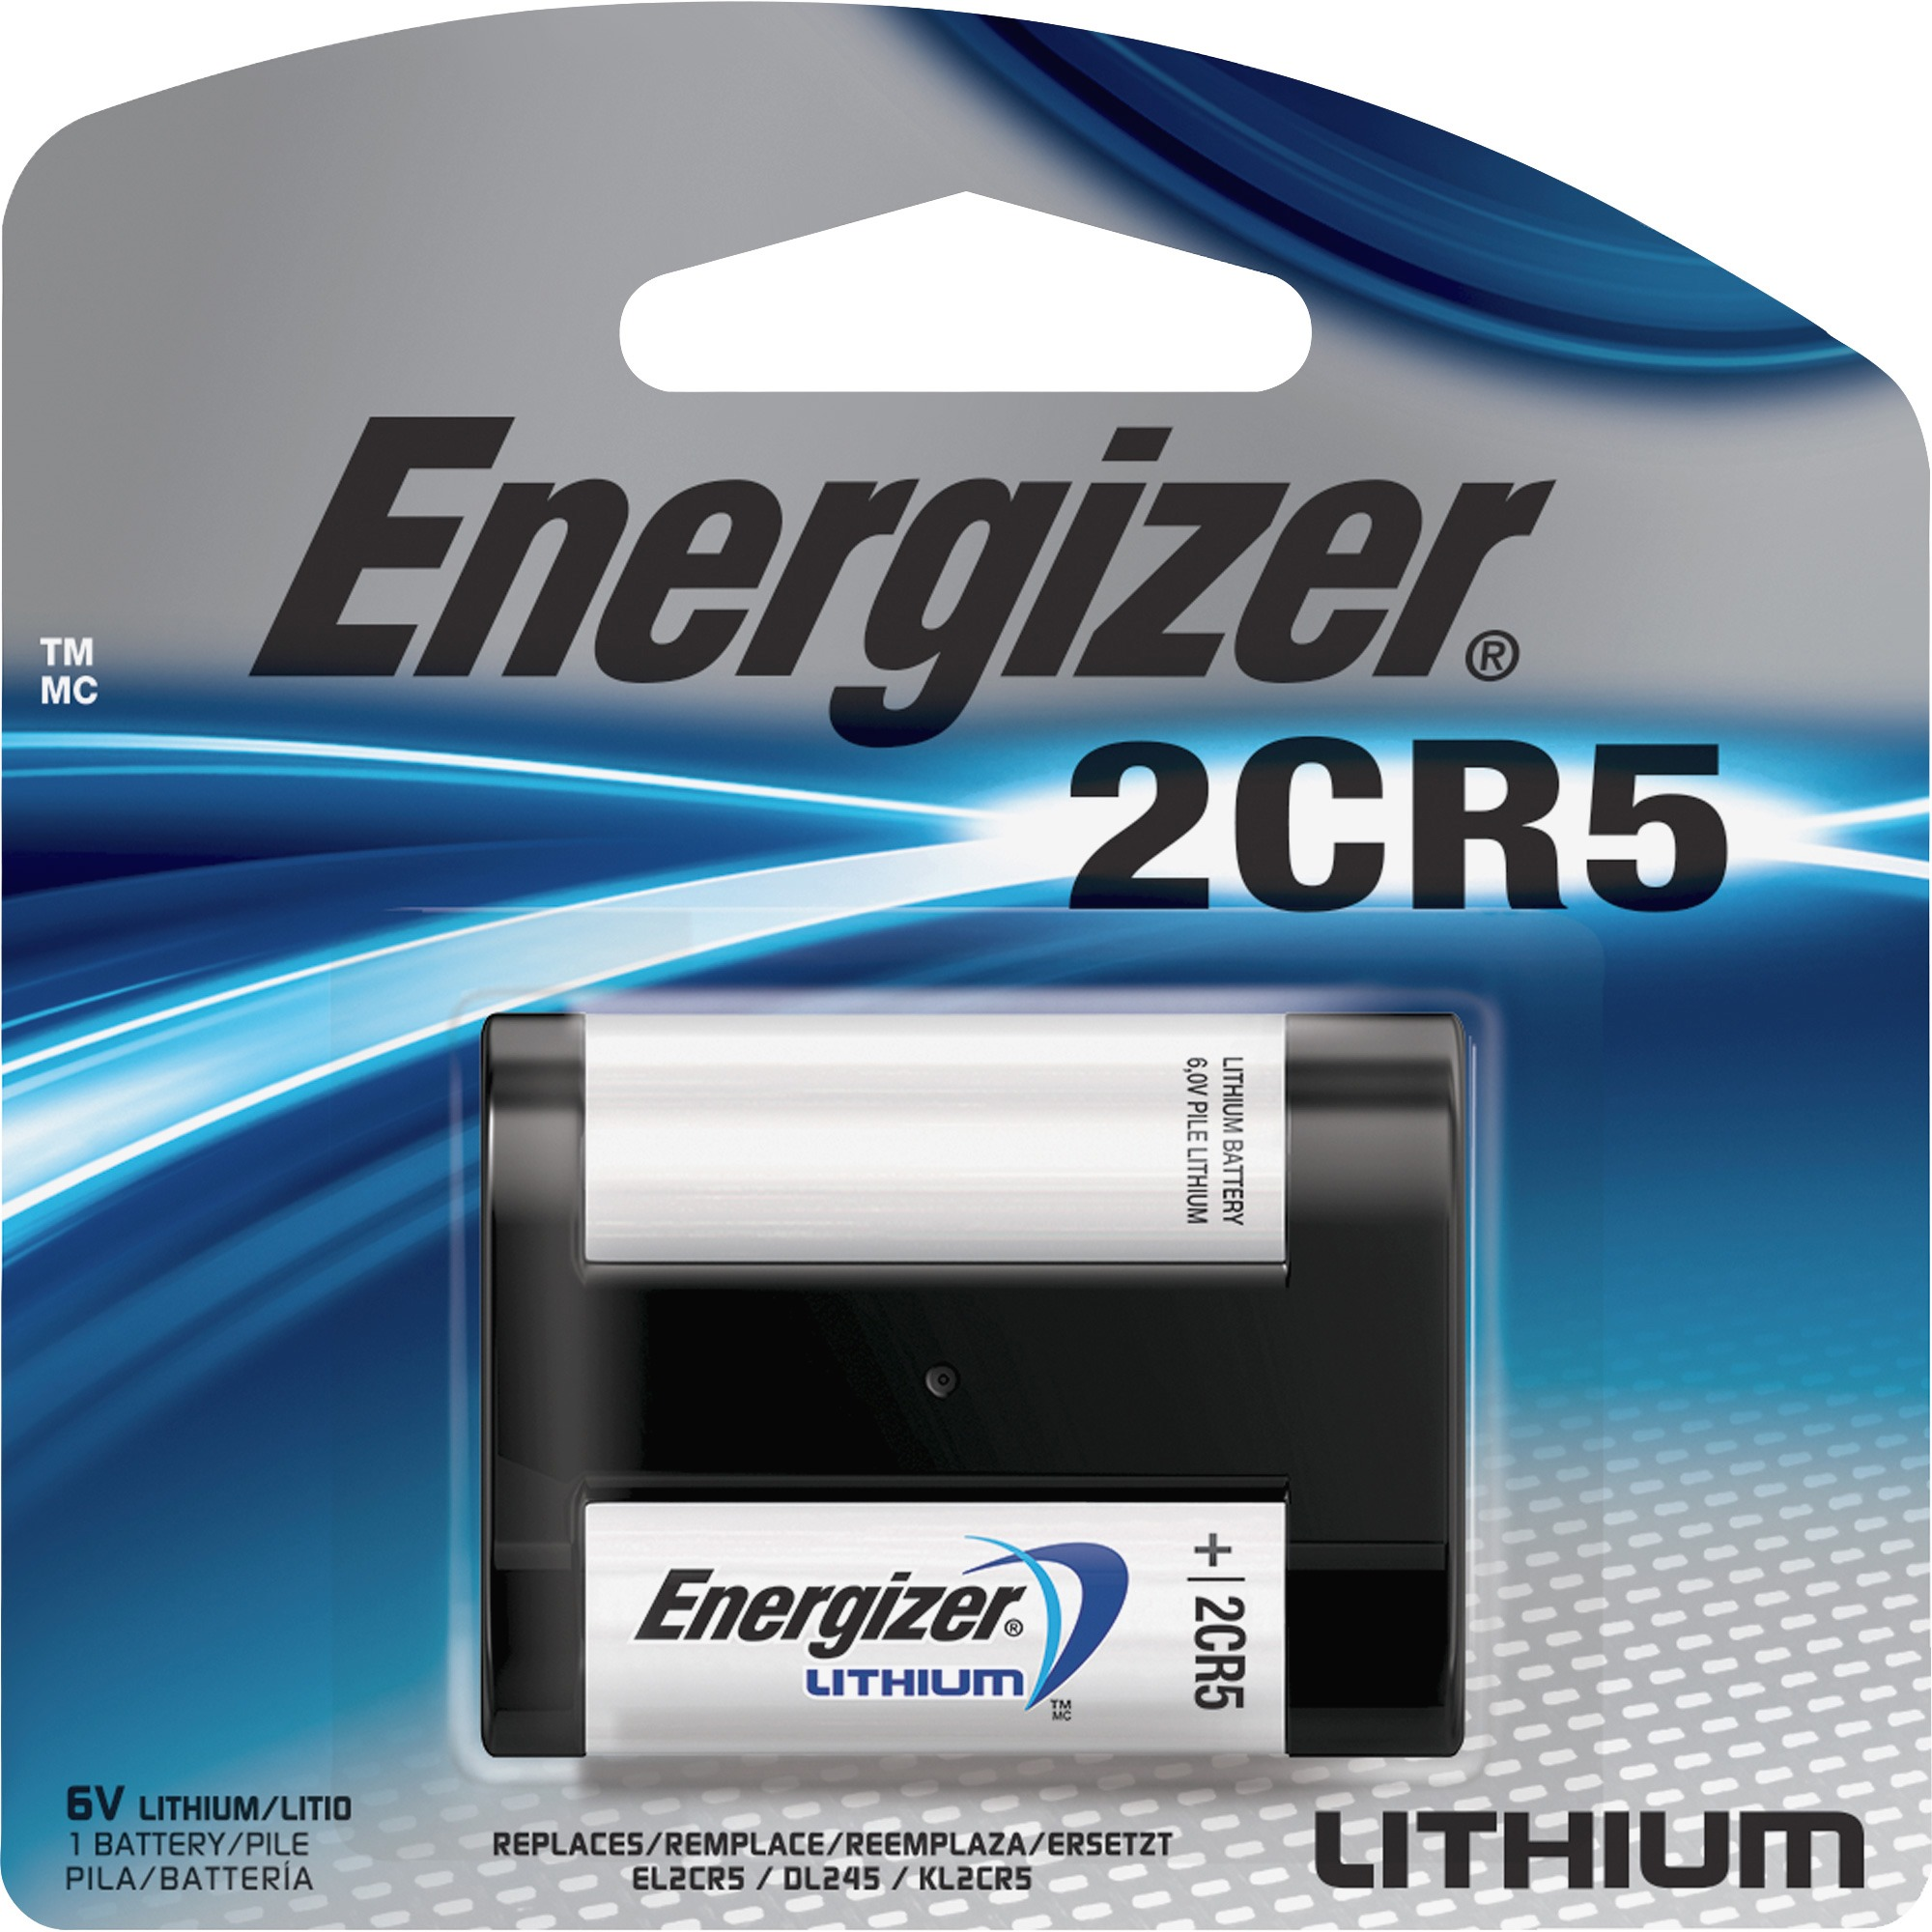 Energizer, EVEEL2CR5BPCT, 2CR5 e2 Lithium Photo 6-Volt Battery, 24 / Carton